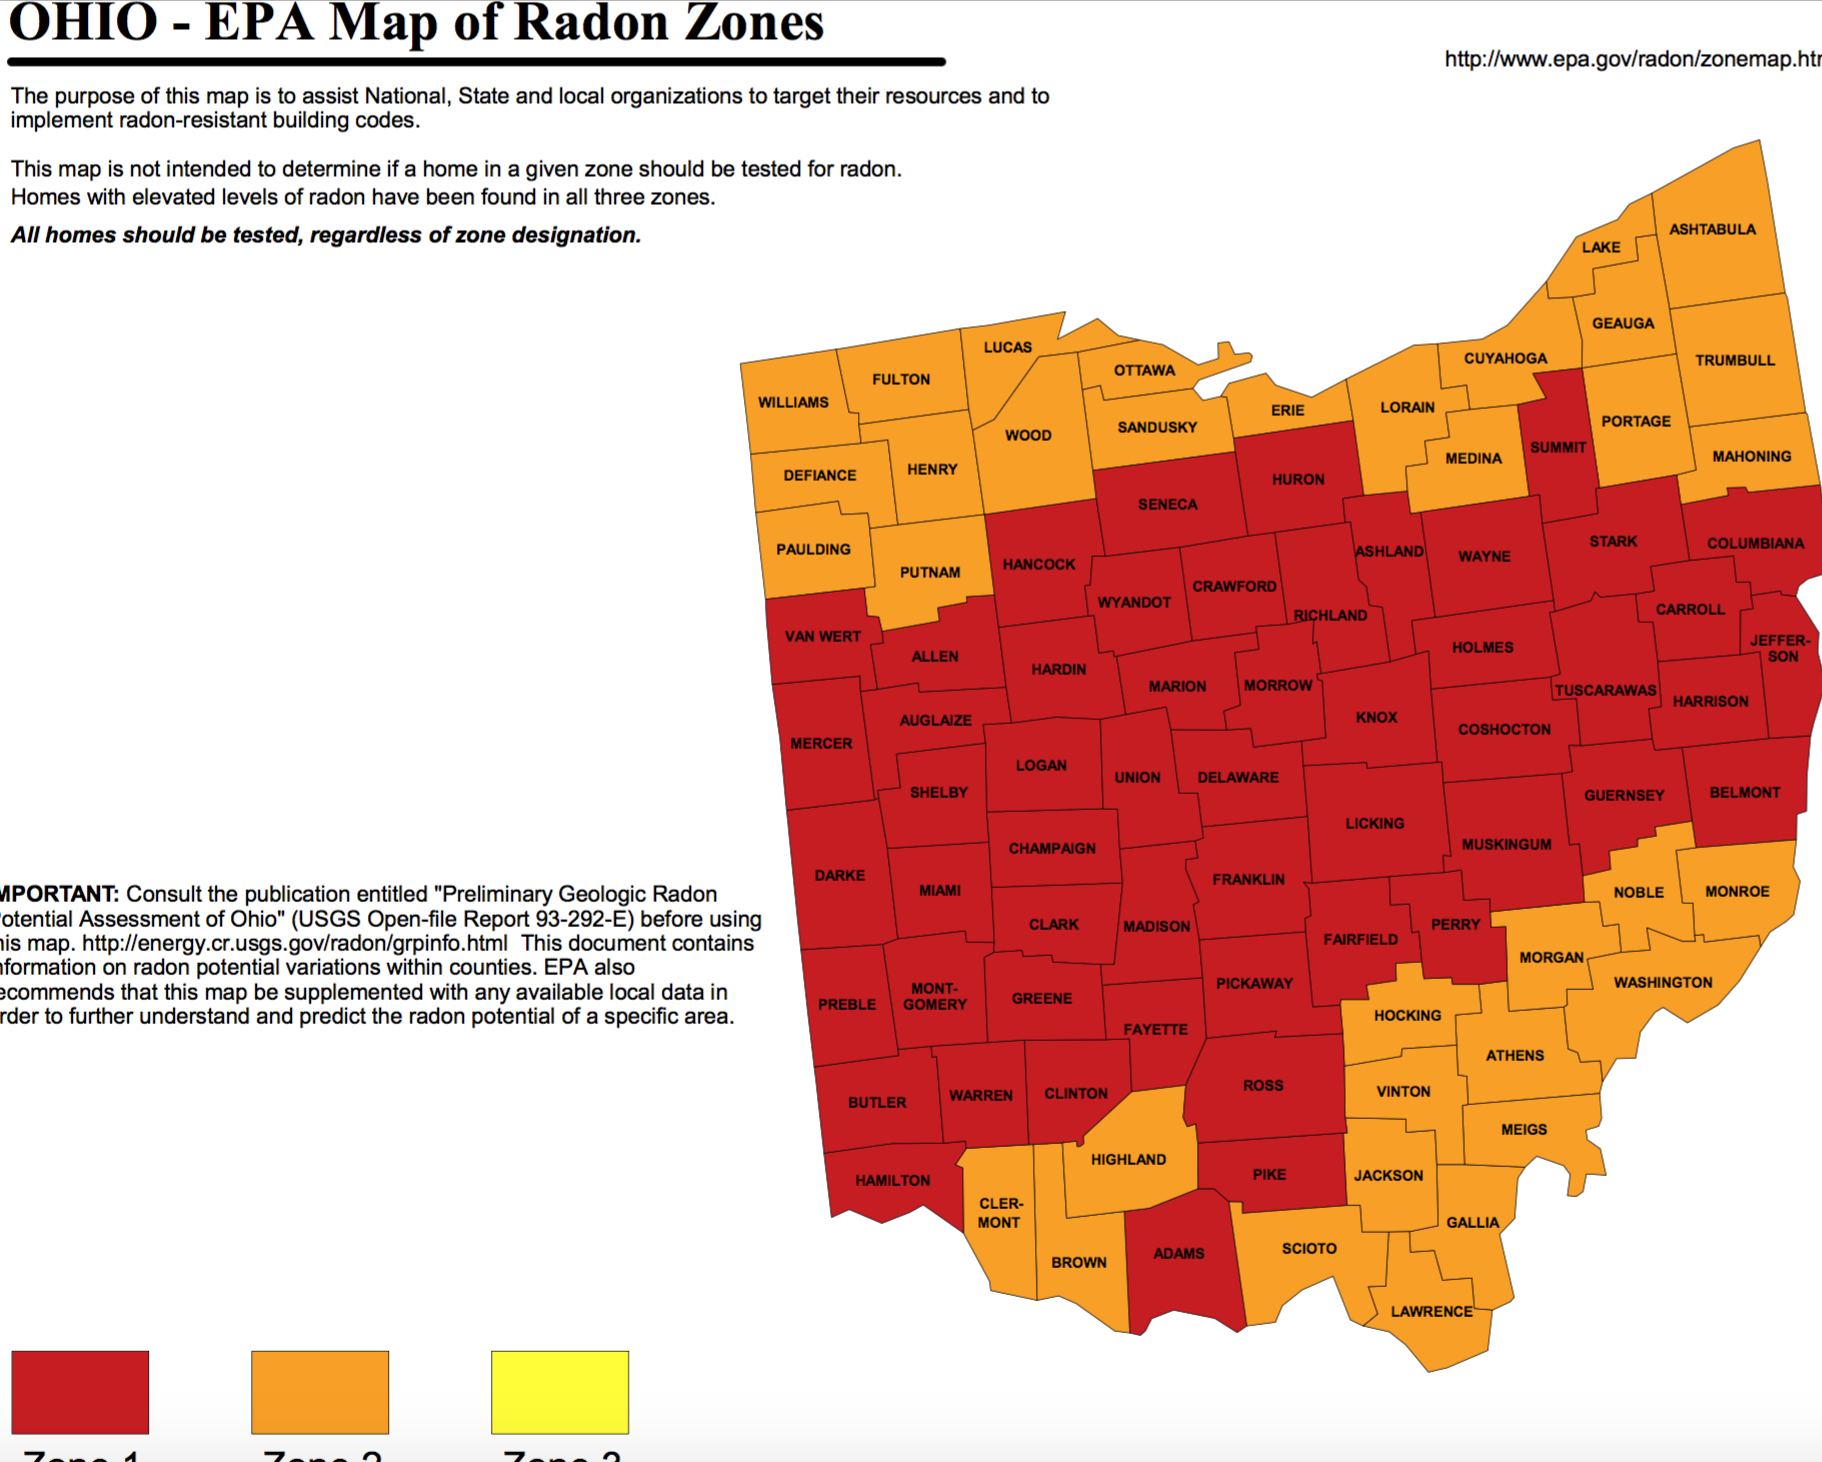 Radon Testing and Mitigation Services in Ohio